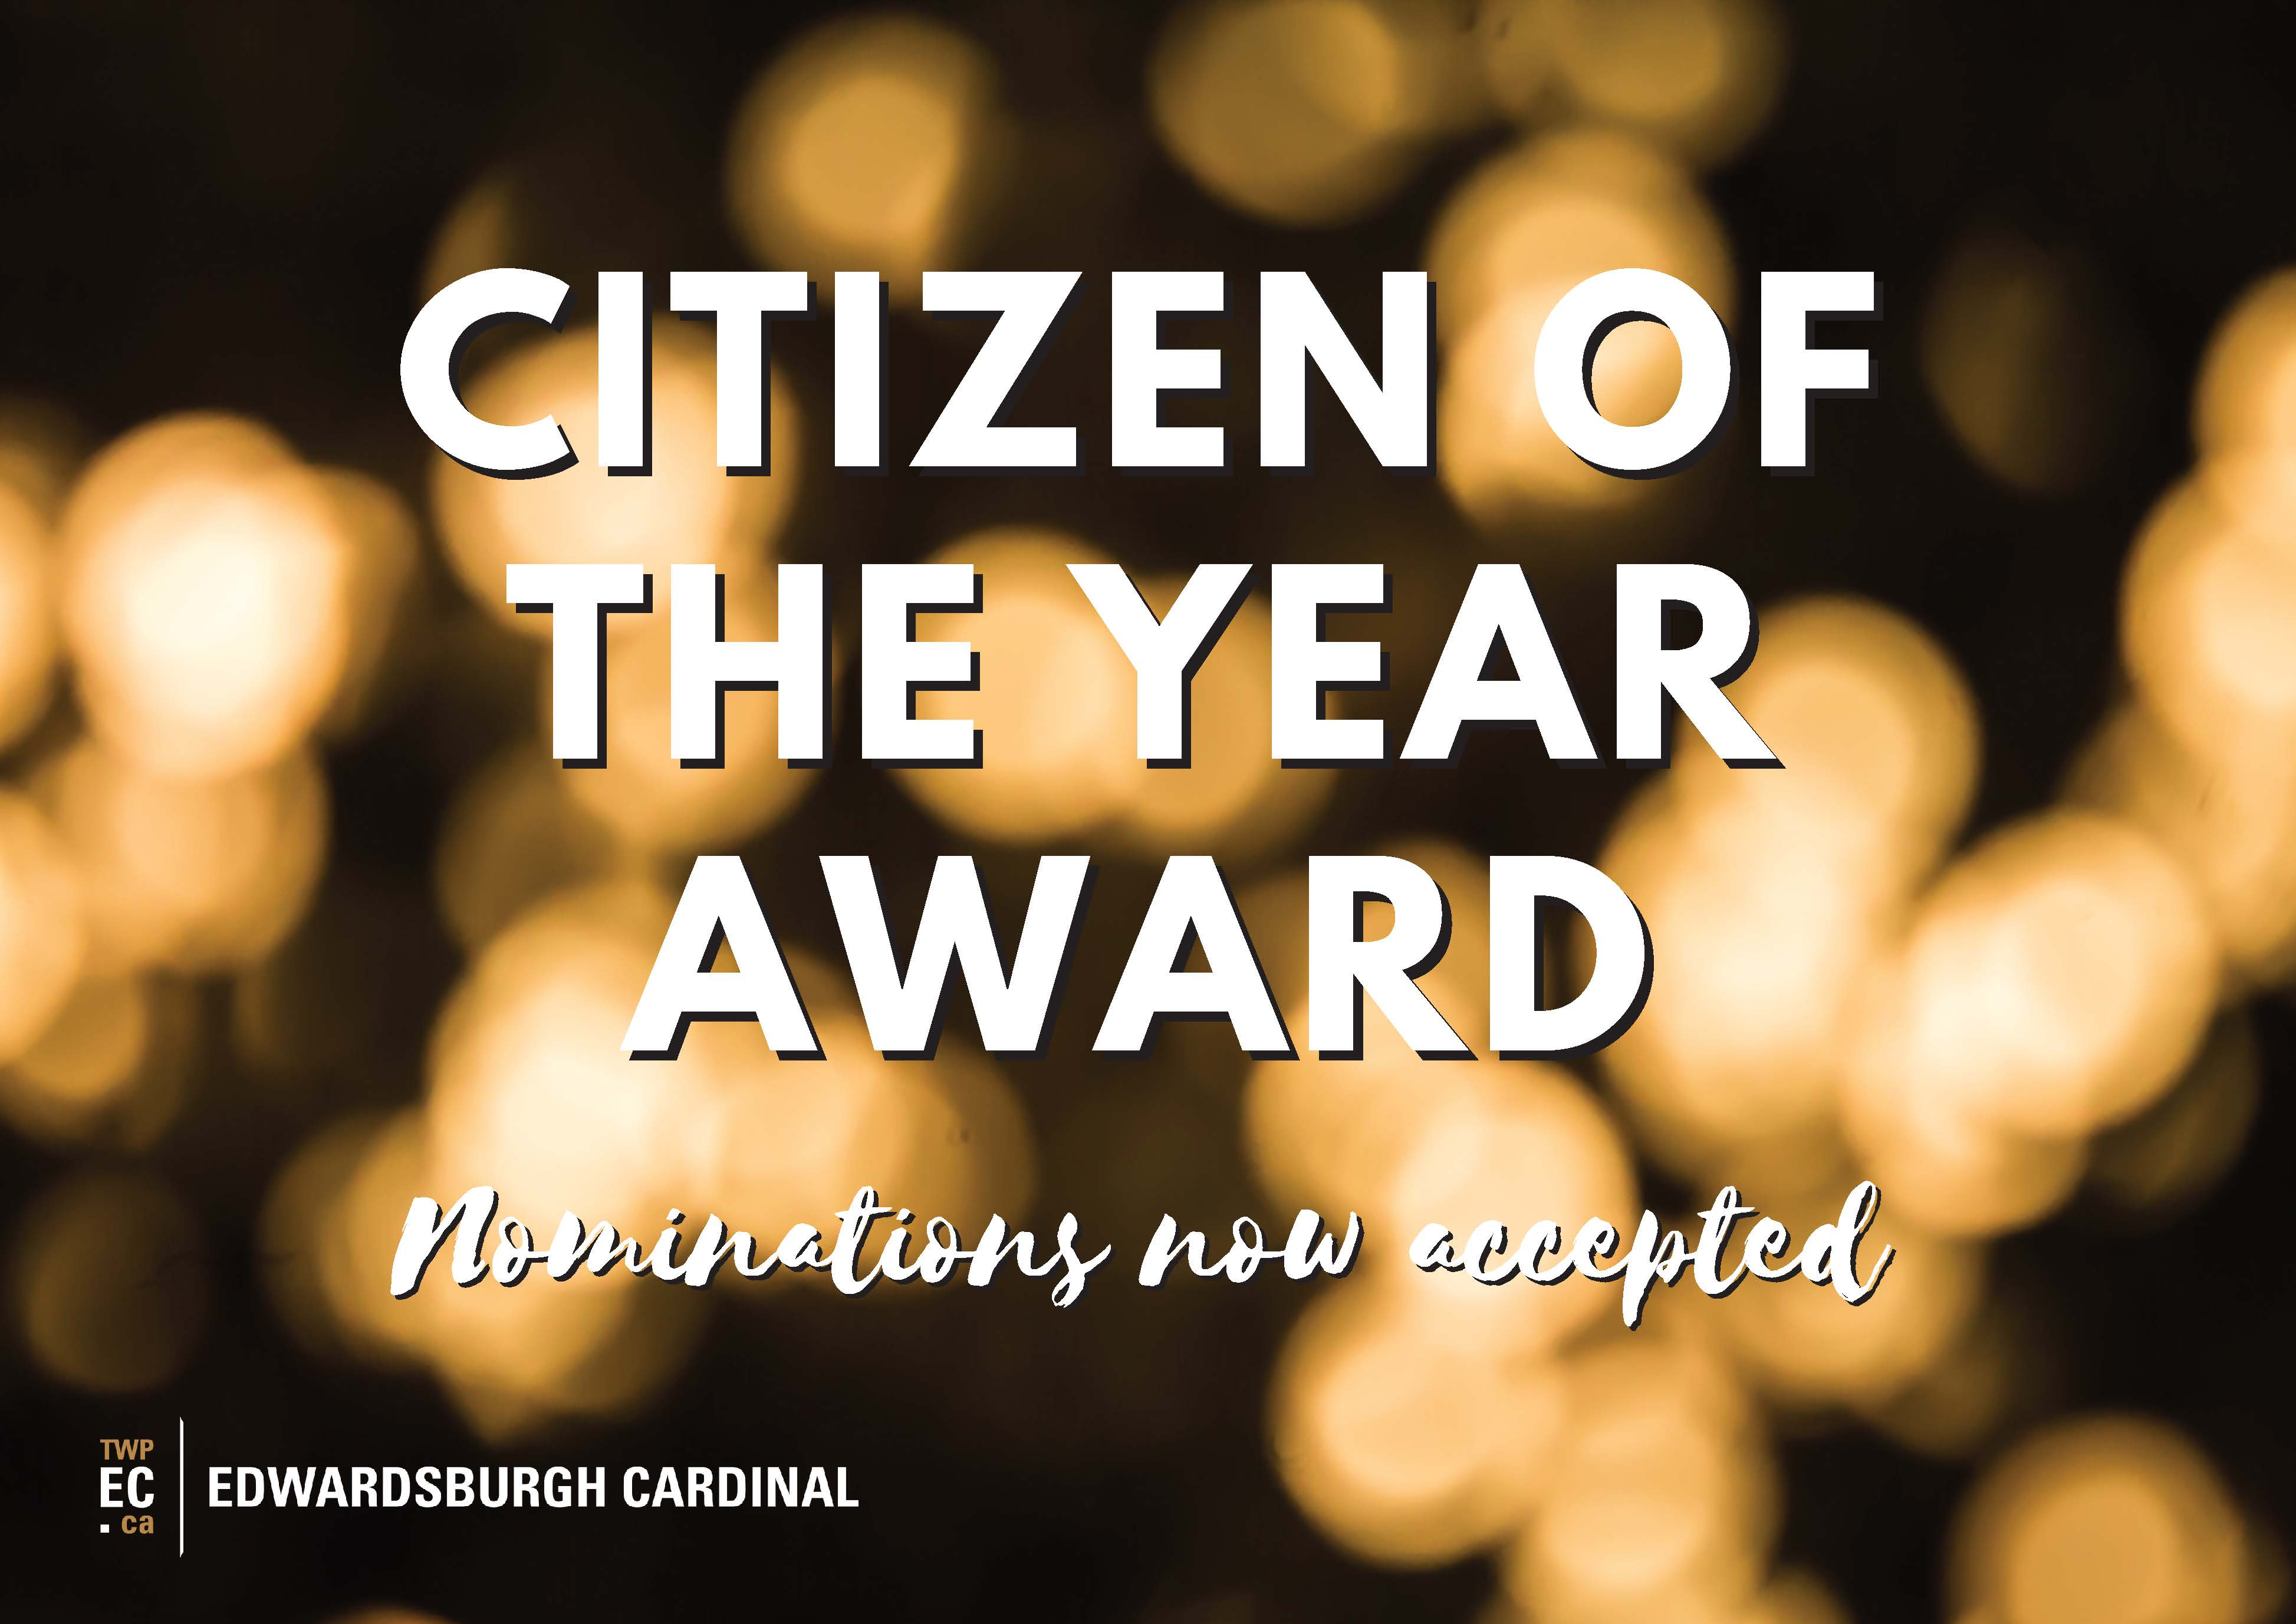 Citizen of the Year Award